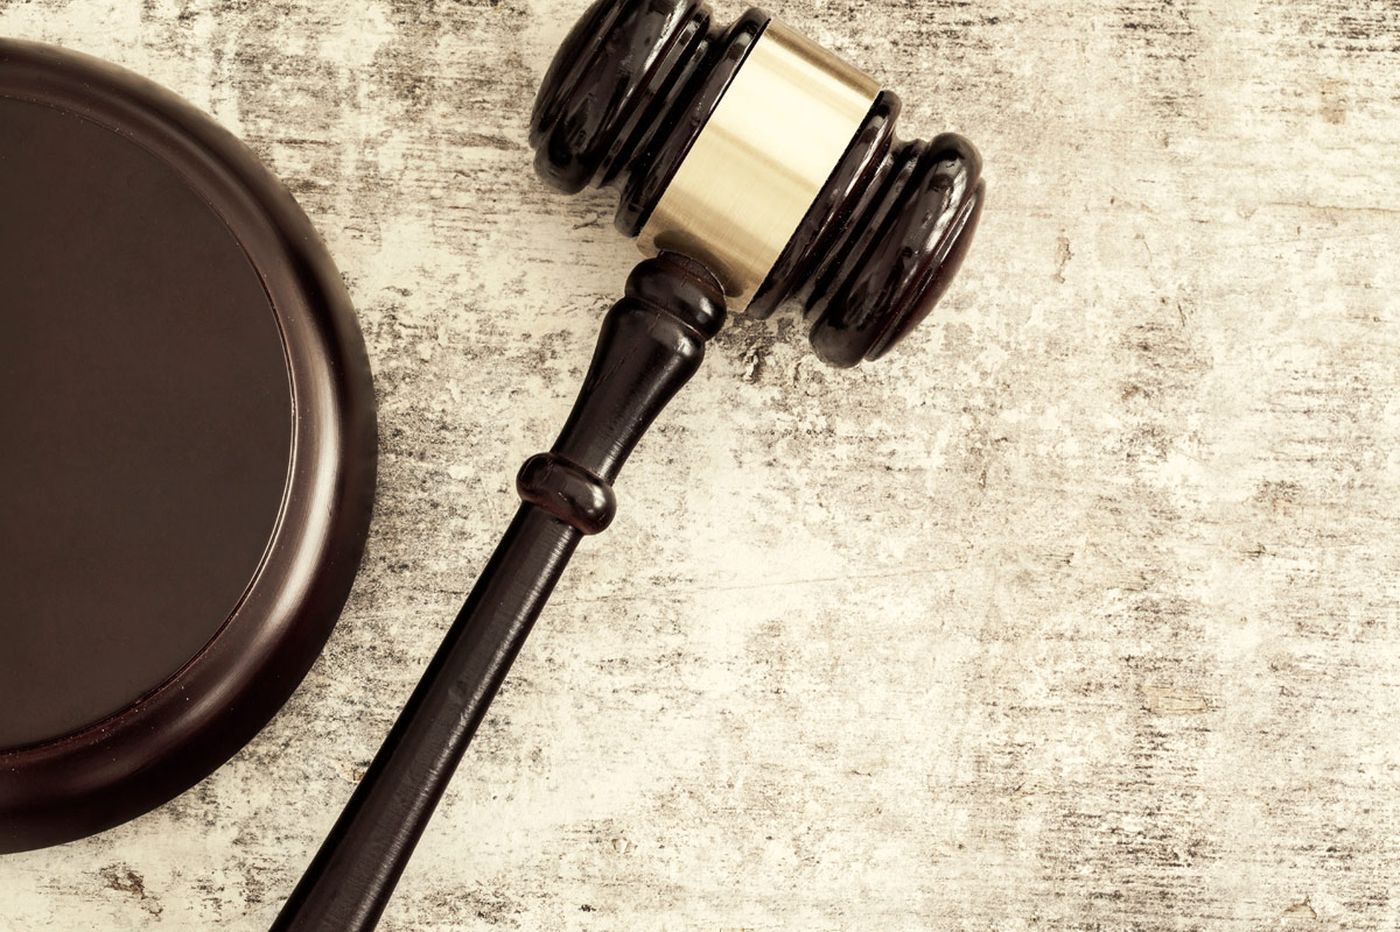 Second judge indicted in Municipal Court scandal